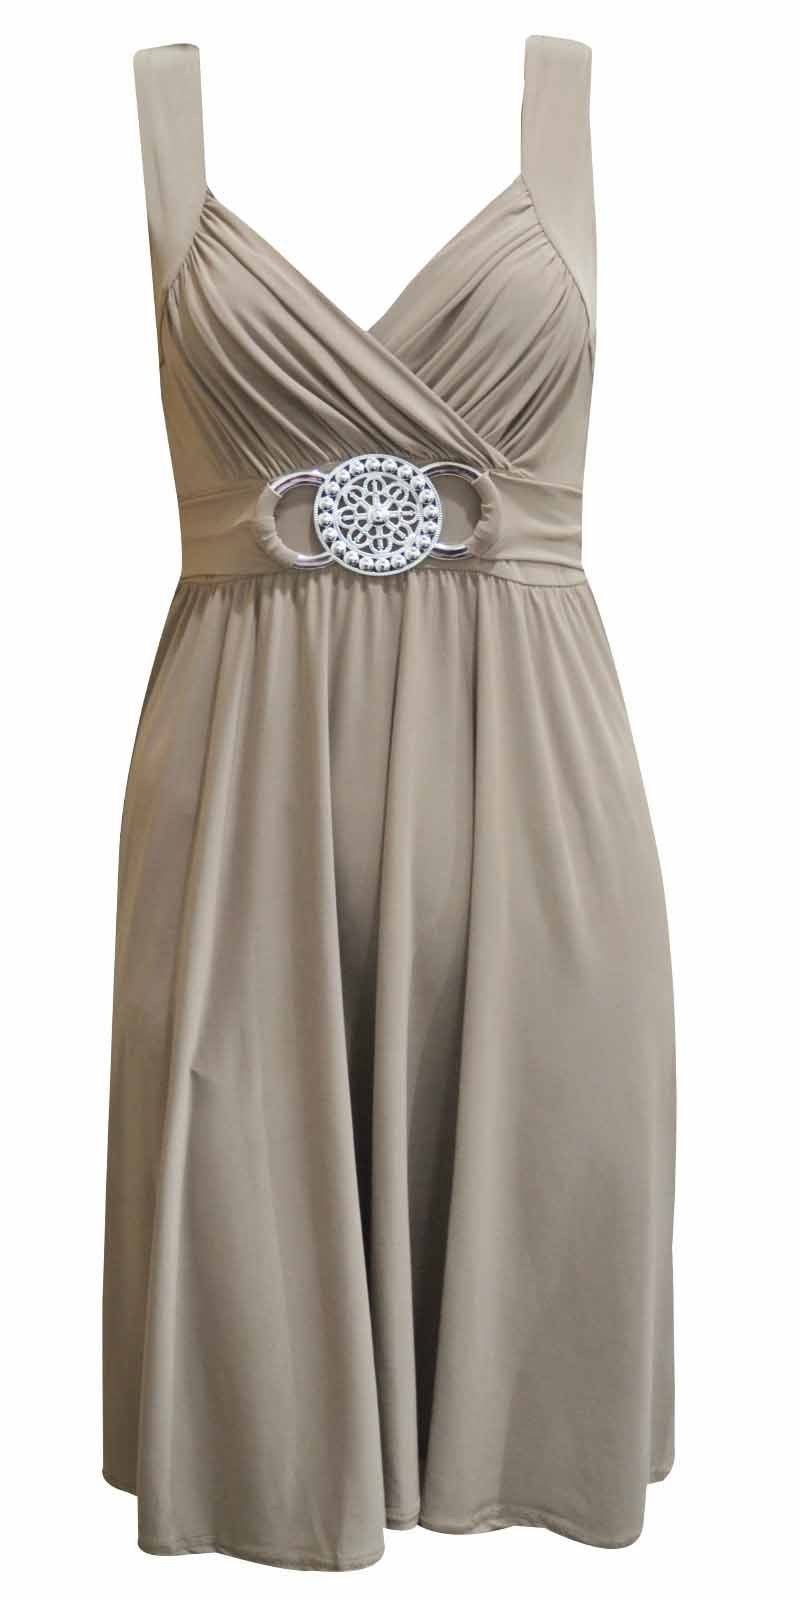 NEW-LADIES-PLUS-SIZE-EVENING-DRESS-BUCKLE-WOMENS-LONG-ELEGANT-COCKTAIL-16-26